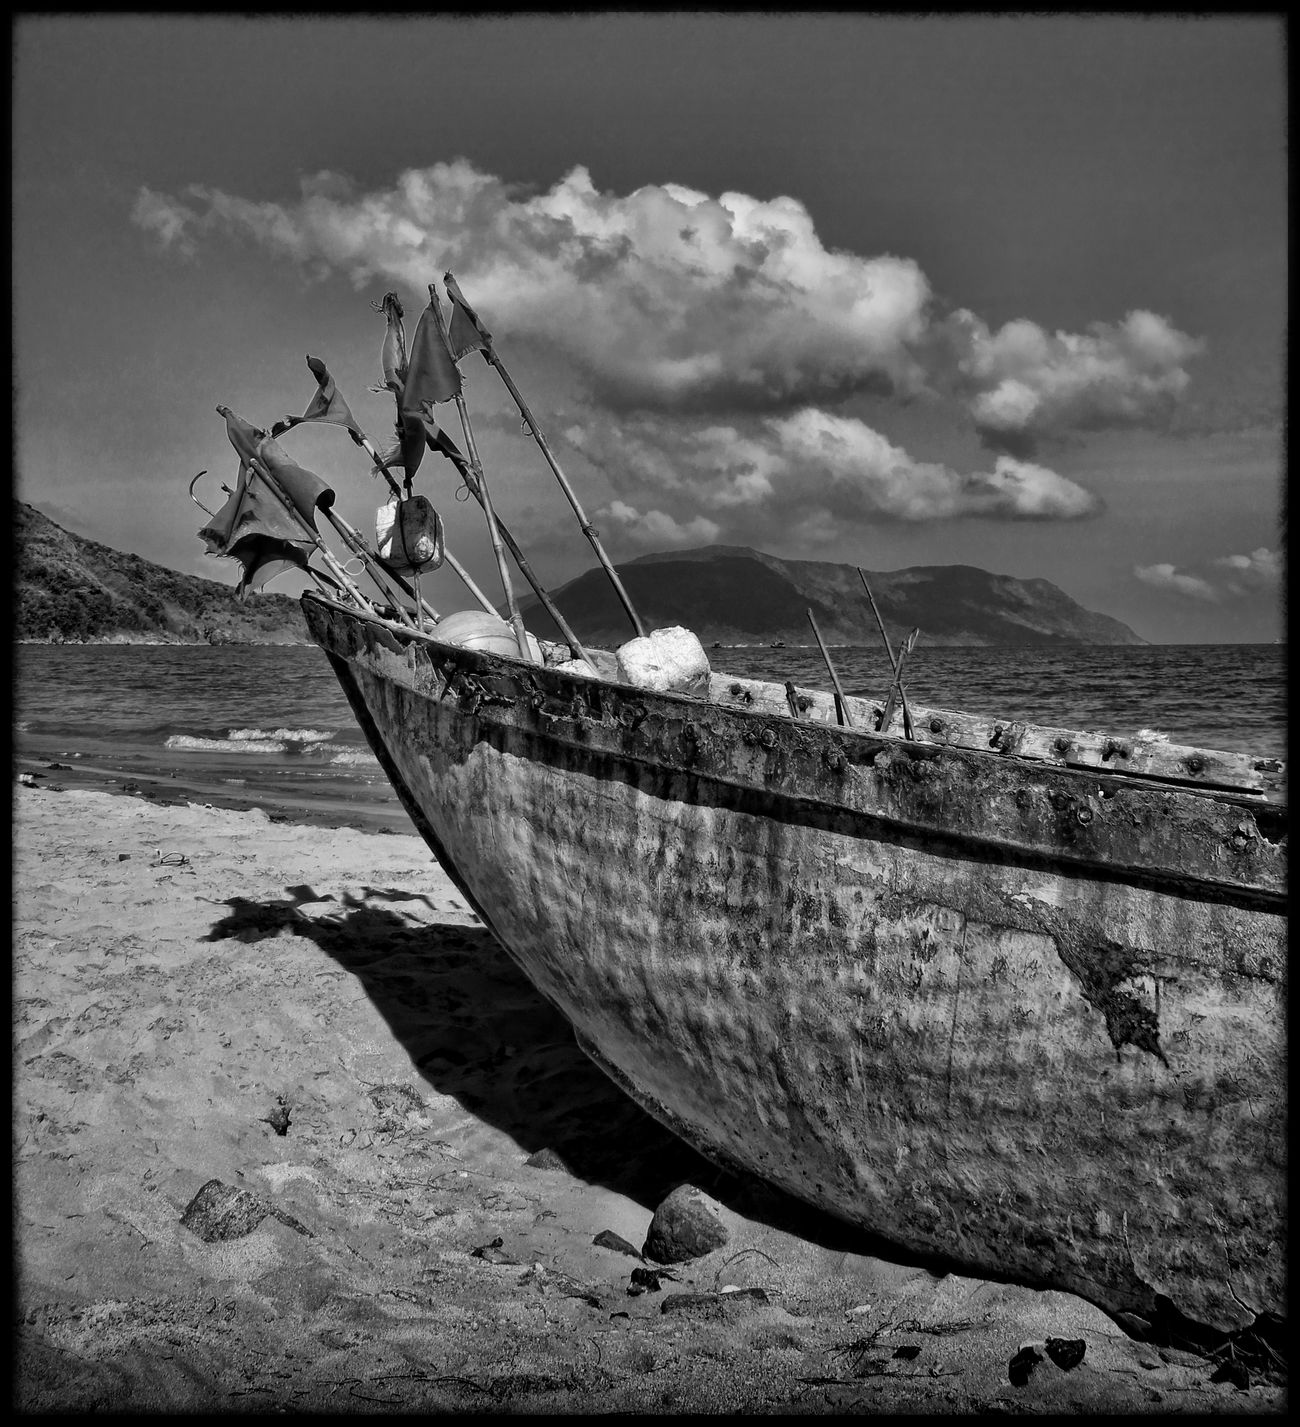 Beach Beachphotography Beauty In Nature Black And White Collection  Blackandwhite Blackandwhite Photography Cloud - Sky Fishing Boat Flags In The Wind  Island Mode Of Transport Moored Nature Nautical Vessel Sand Sea Tranquil Scene Tropical Climate